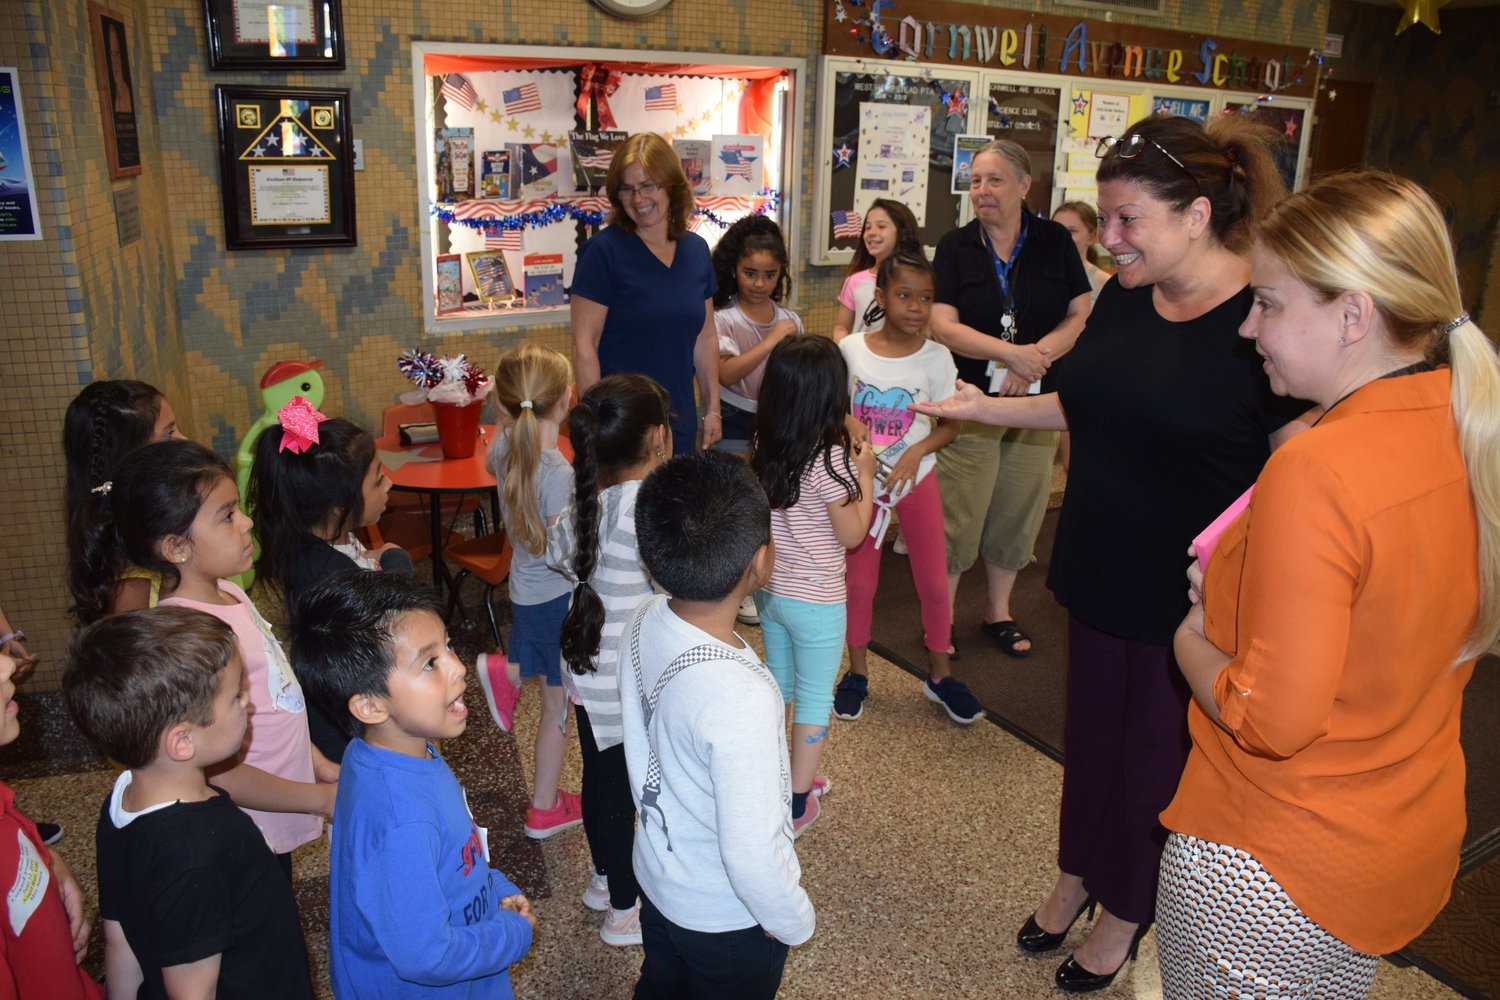 Cornwell Avenue Principal Deanna Sinito, second from right, welcomed Chestnut Street kindergarten students for a tour on June 12.